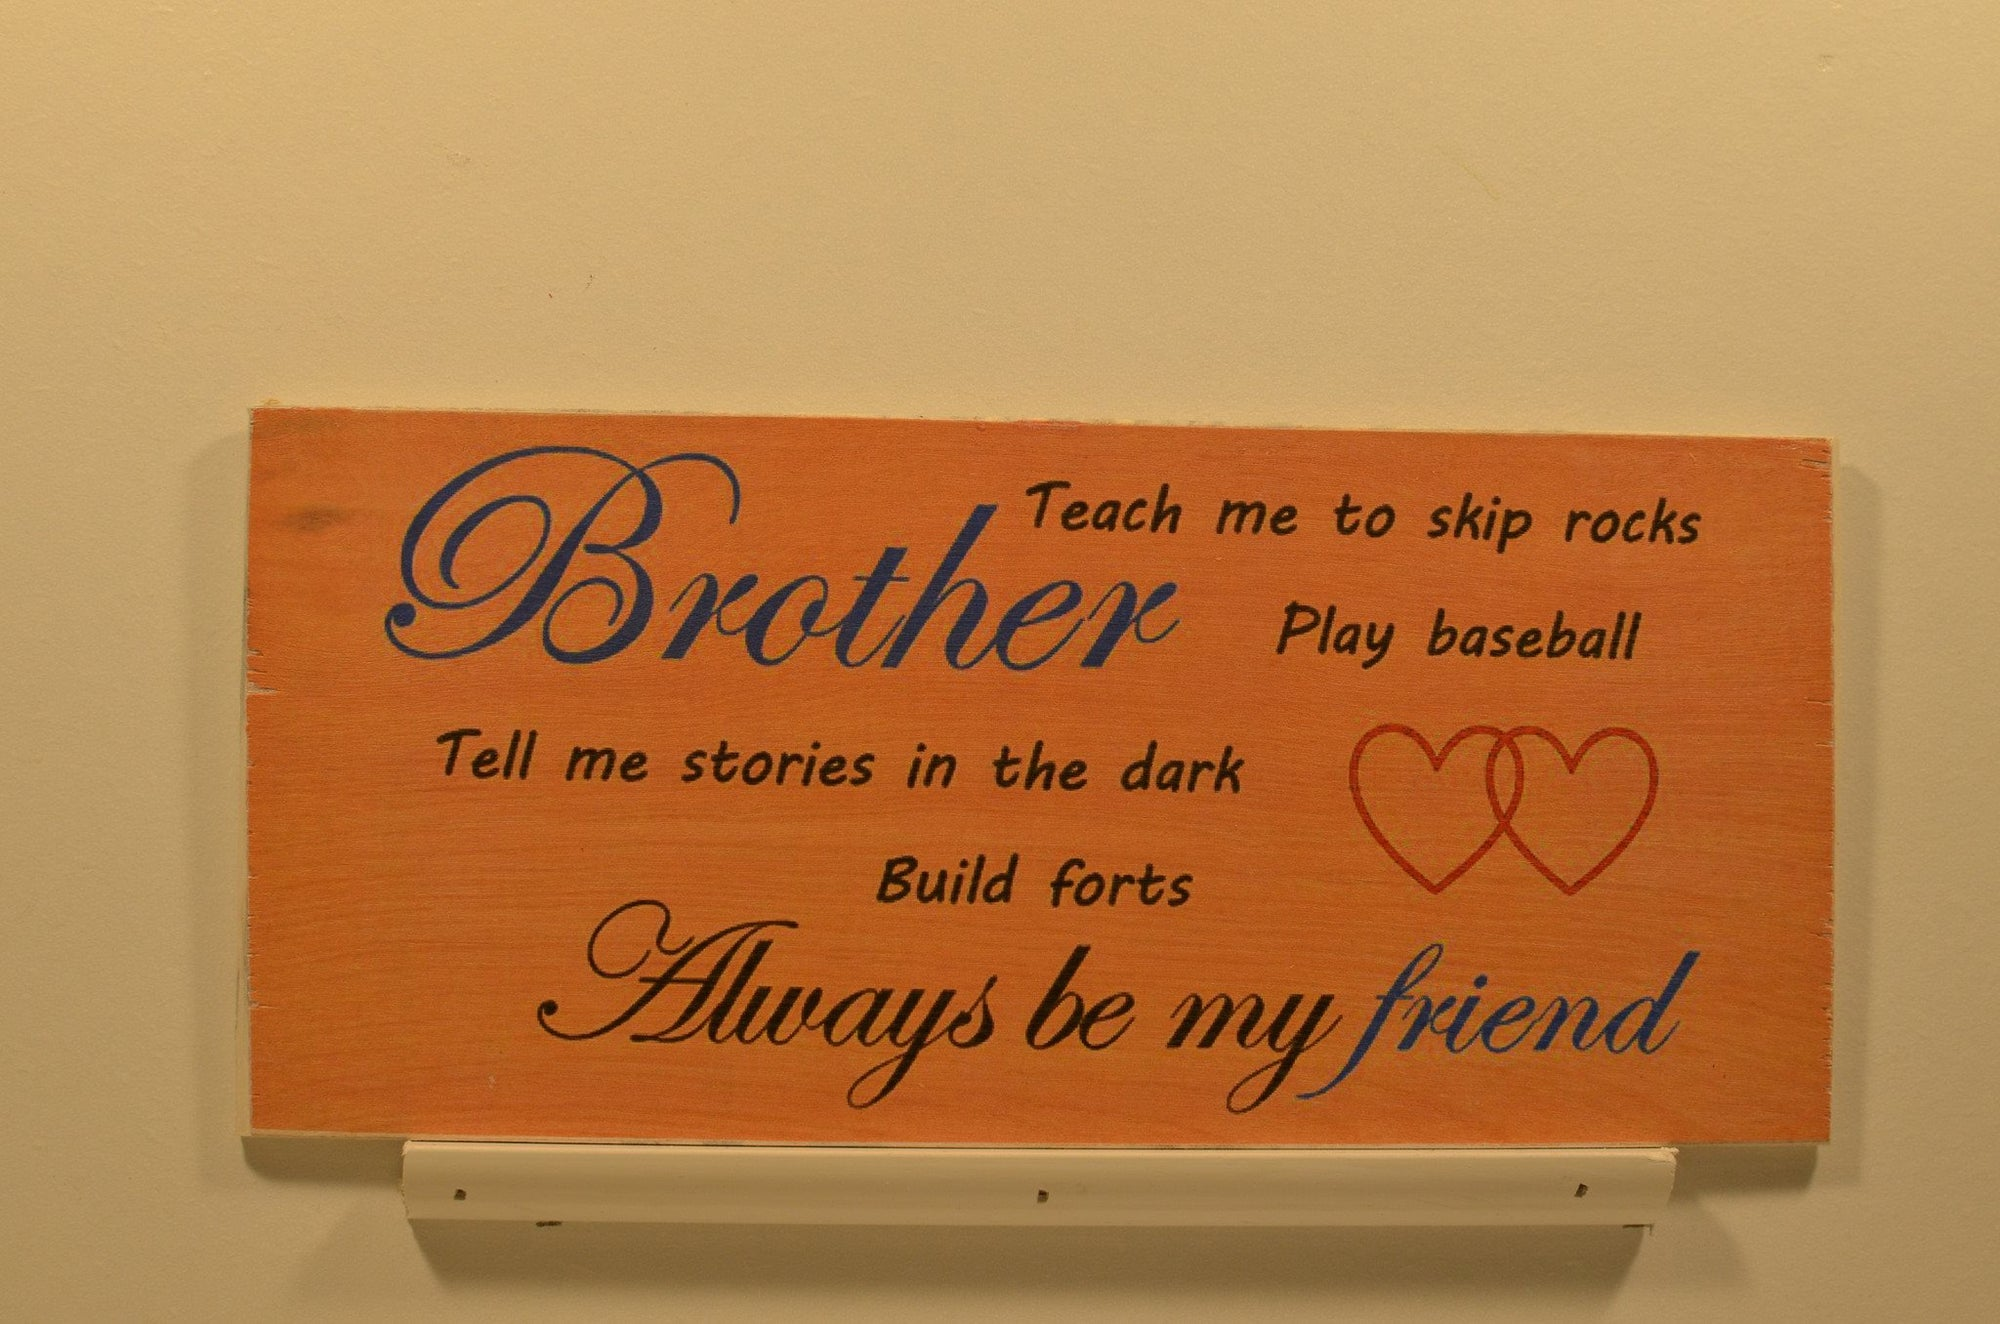 Wooden Wall Sign 10x5 - S018 - Brother Always be my friend - Wall Sign - Wicked Good Candle and Decor - 1